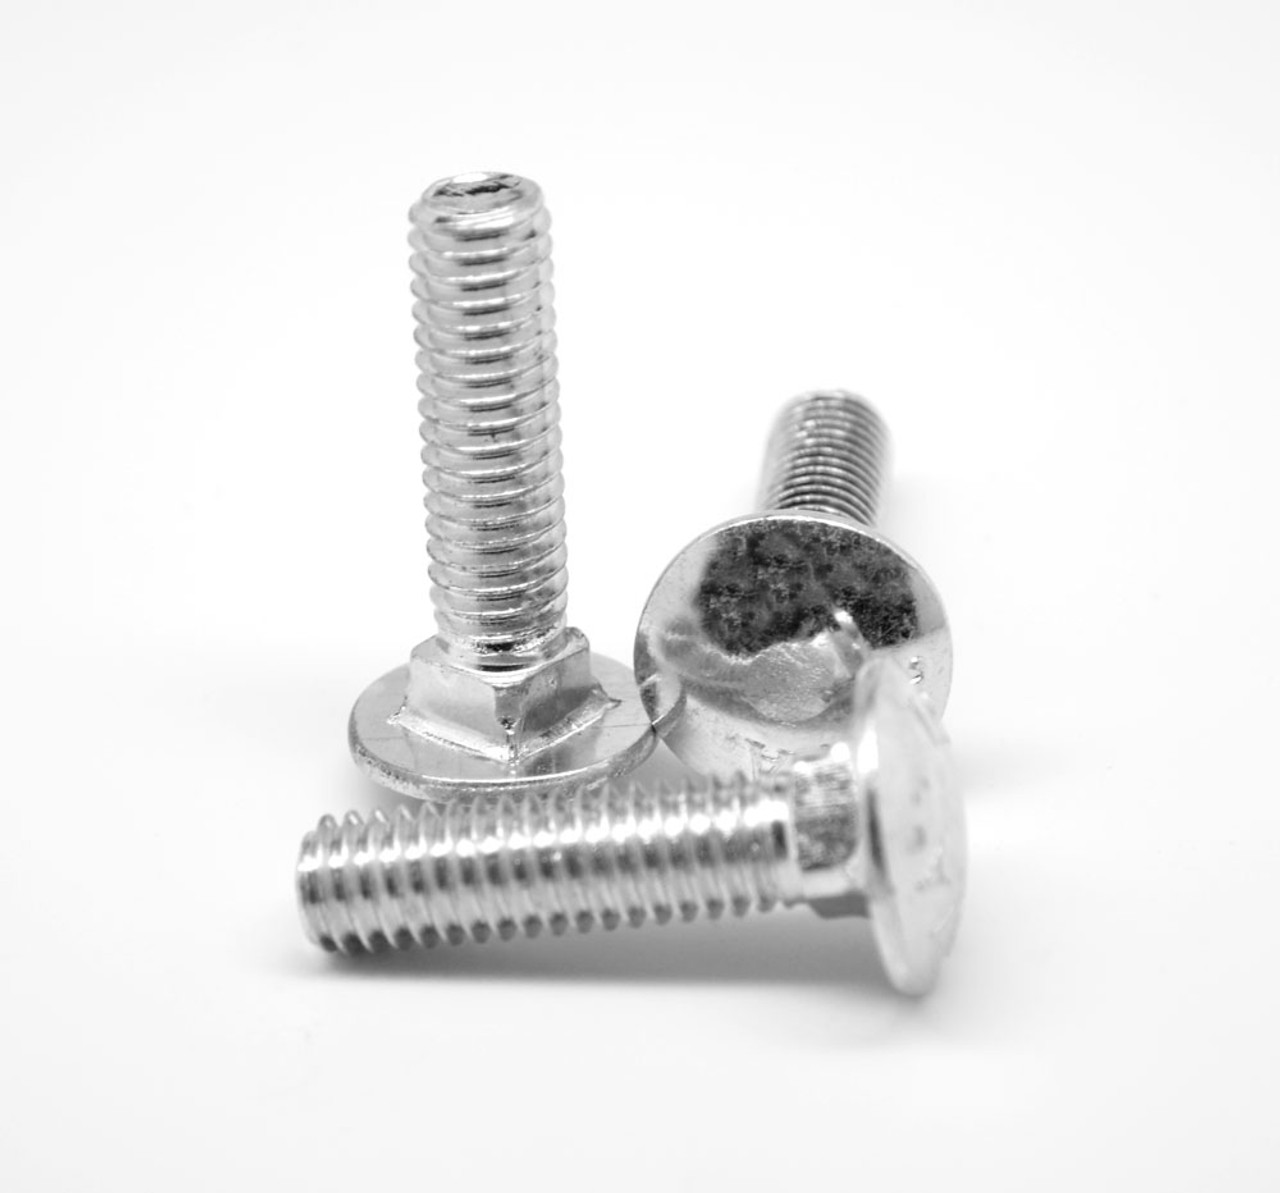 """#10-24 x 2 1/2"""" (FT) Coarse Thread A307 Grade A Carriage Bolt Low Carbon Steel Zinc Plated"""